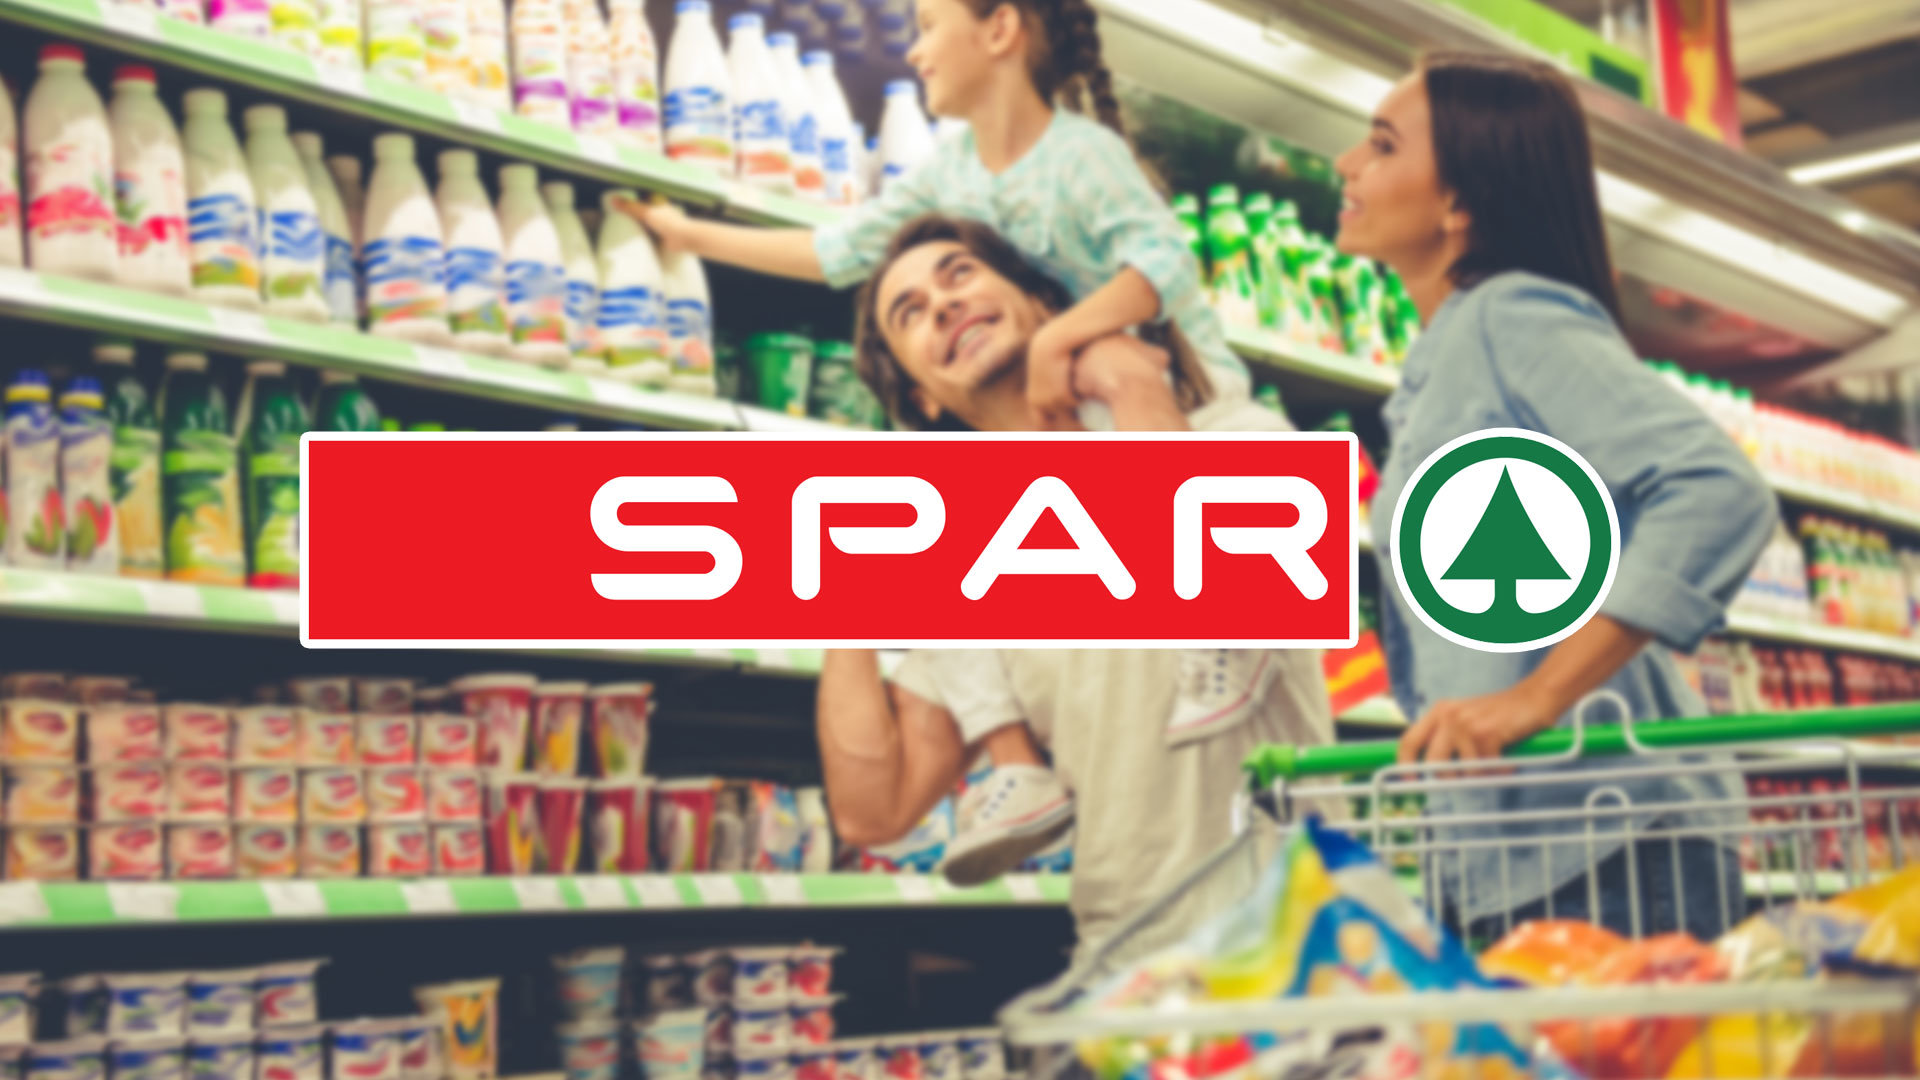 Brisbane South Spar Supermarket For Sale